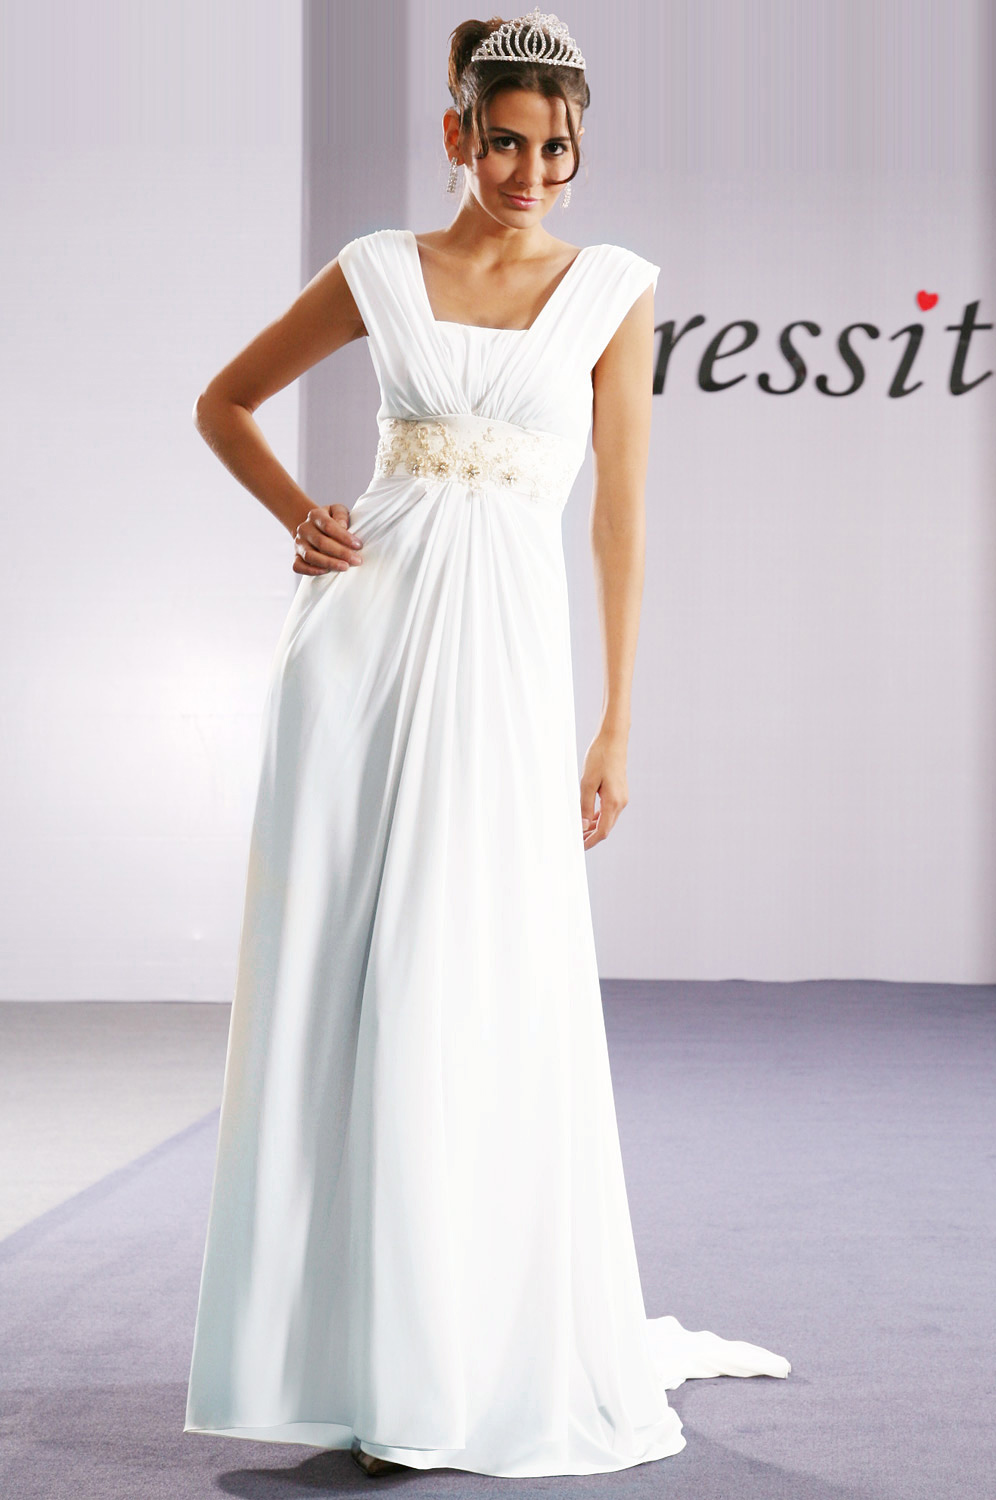 On sale !! eDressit white Prom Gown Evening Dress (00092007r)